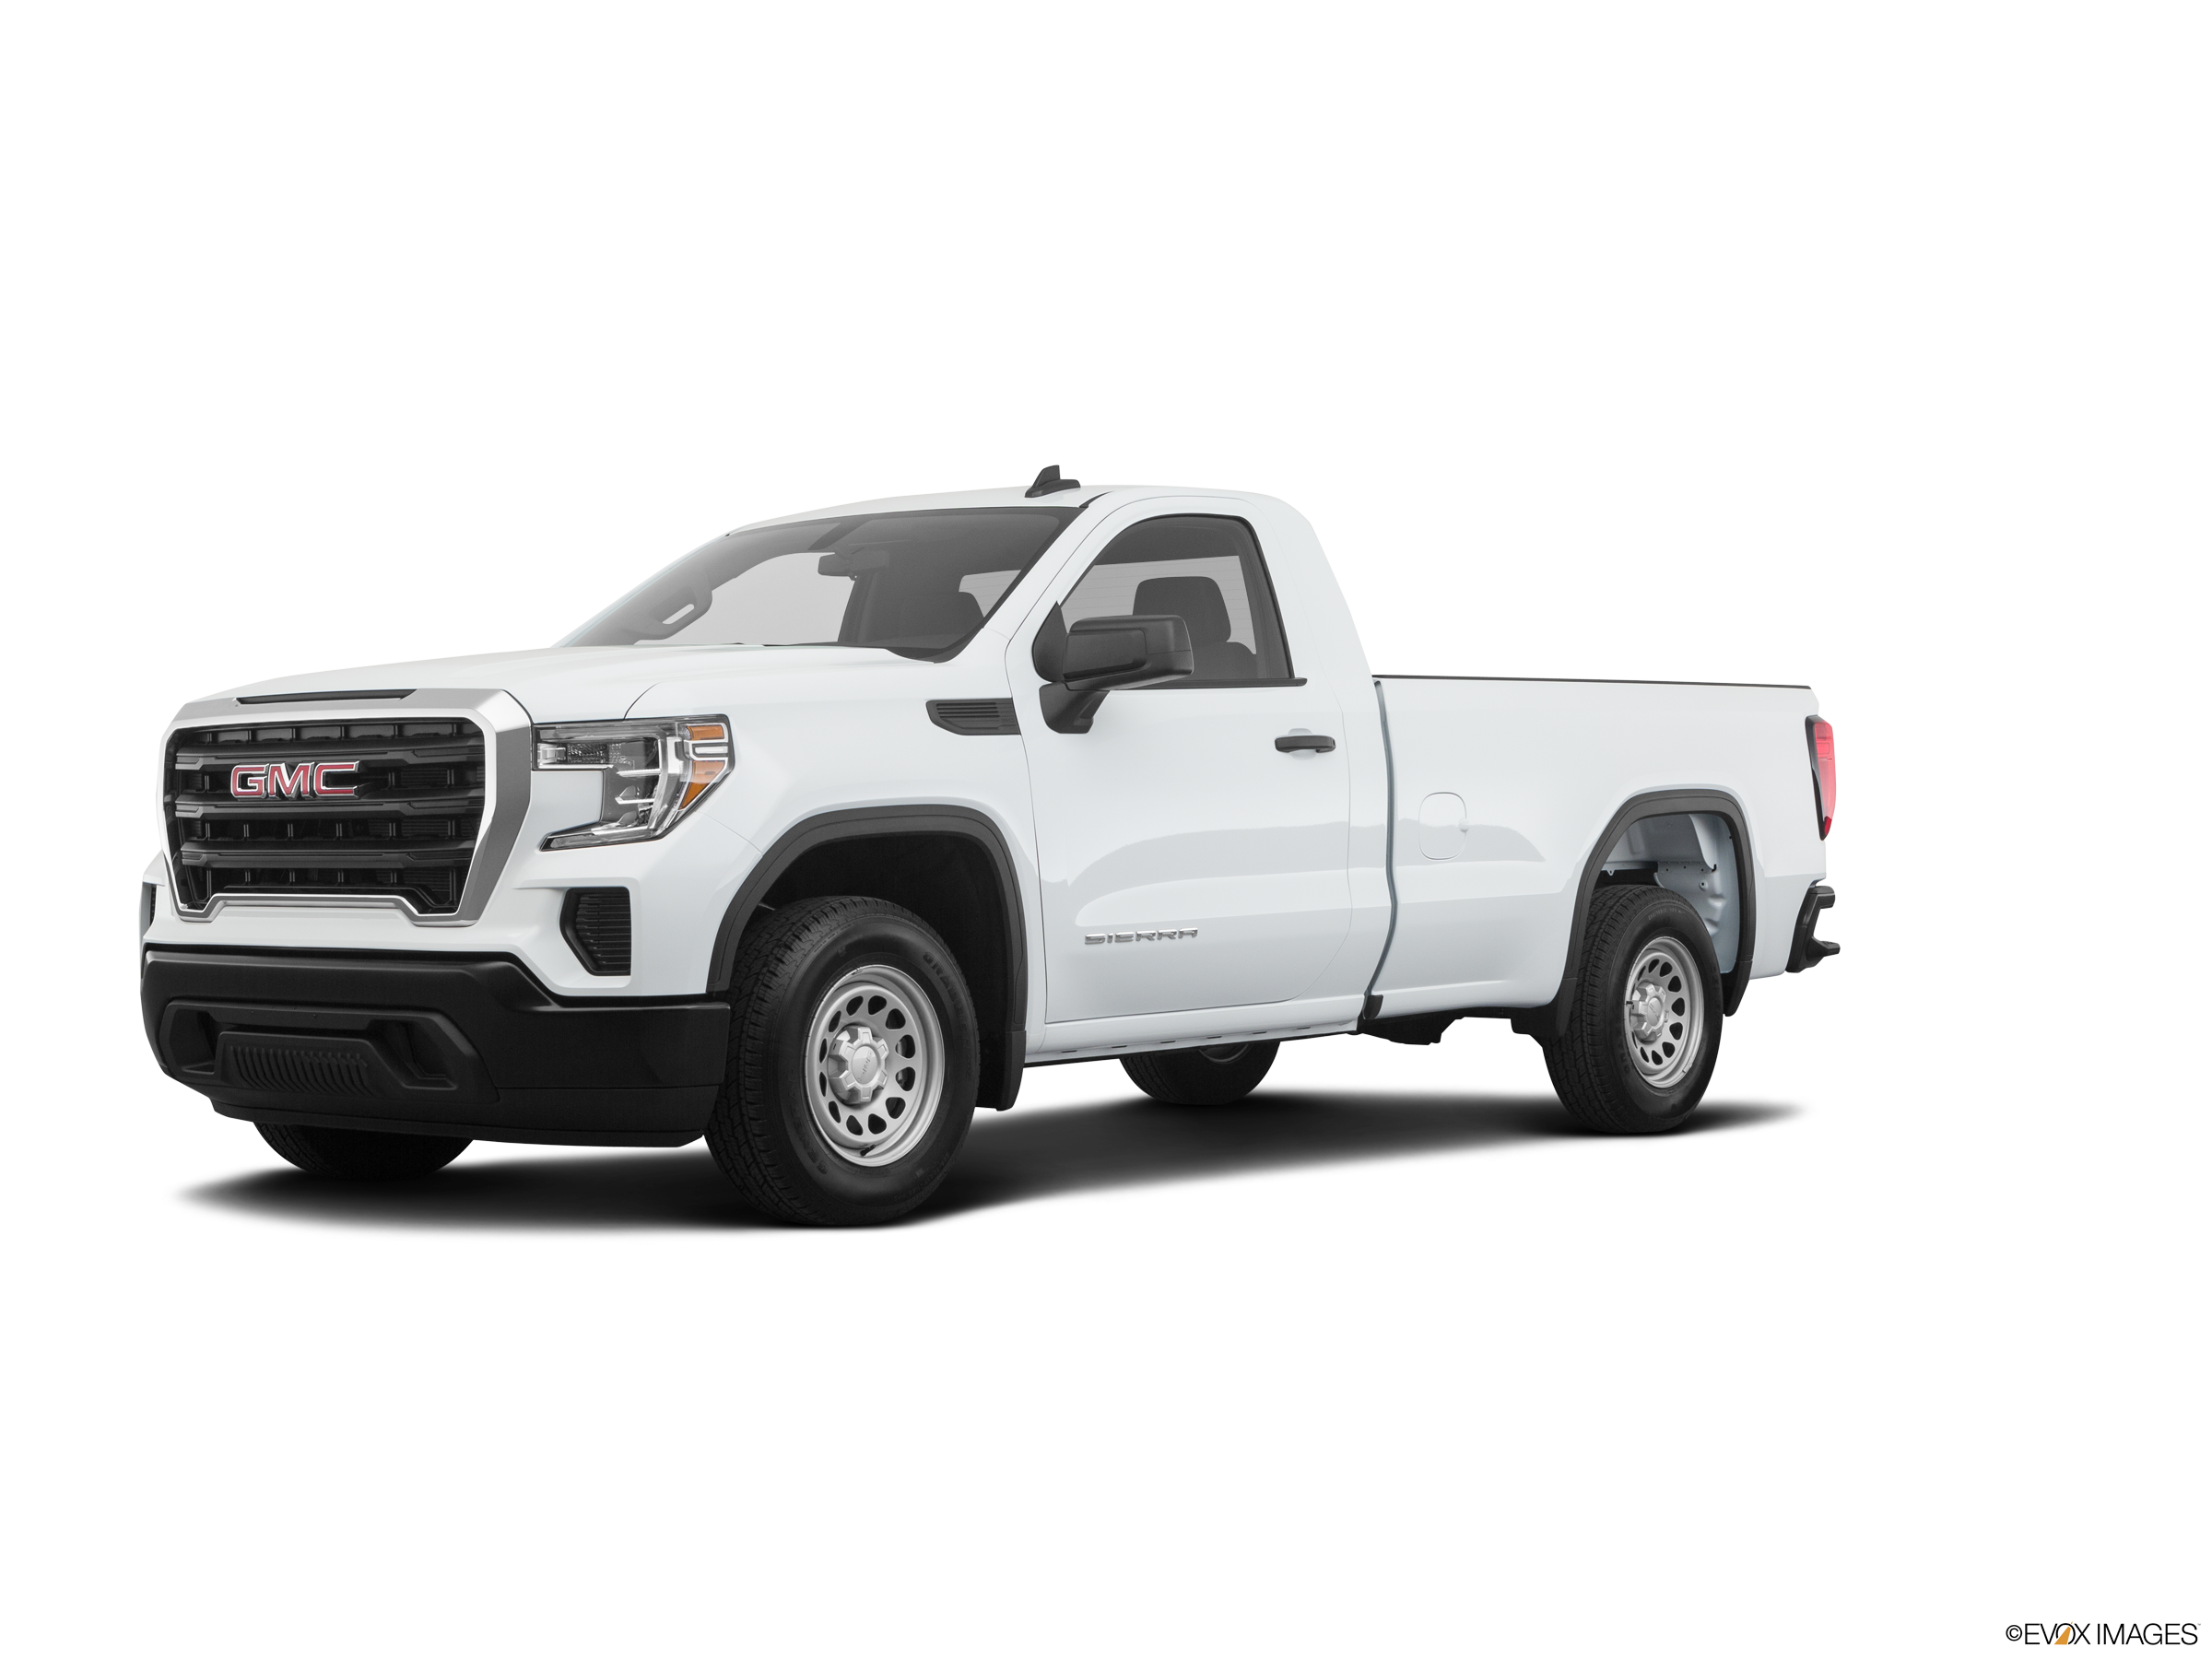 2019 Gmc Sierra 1500 Values Cars For Sale Kelley Blue Book